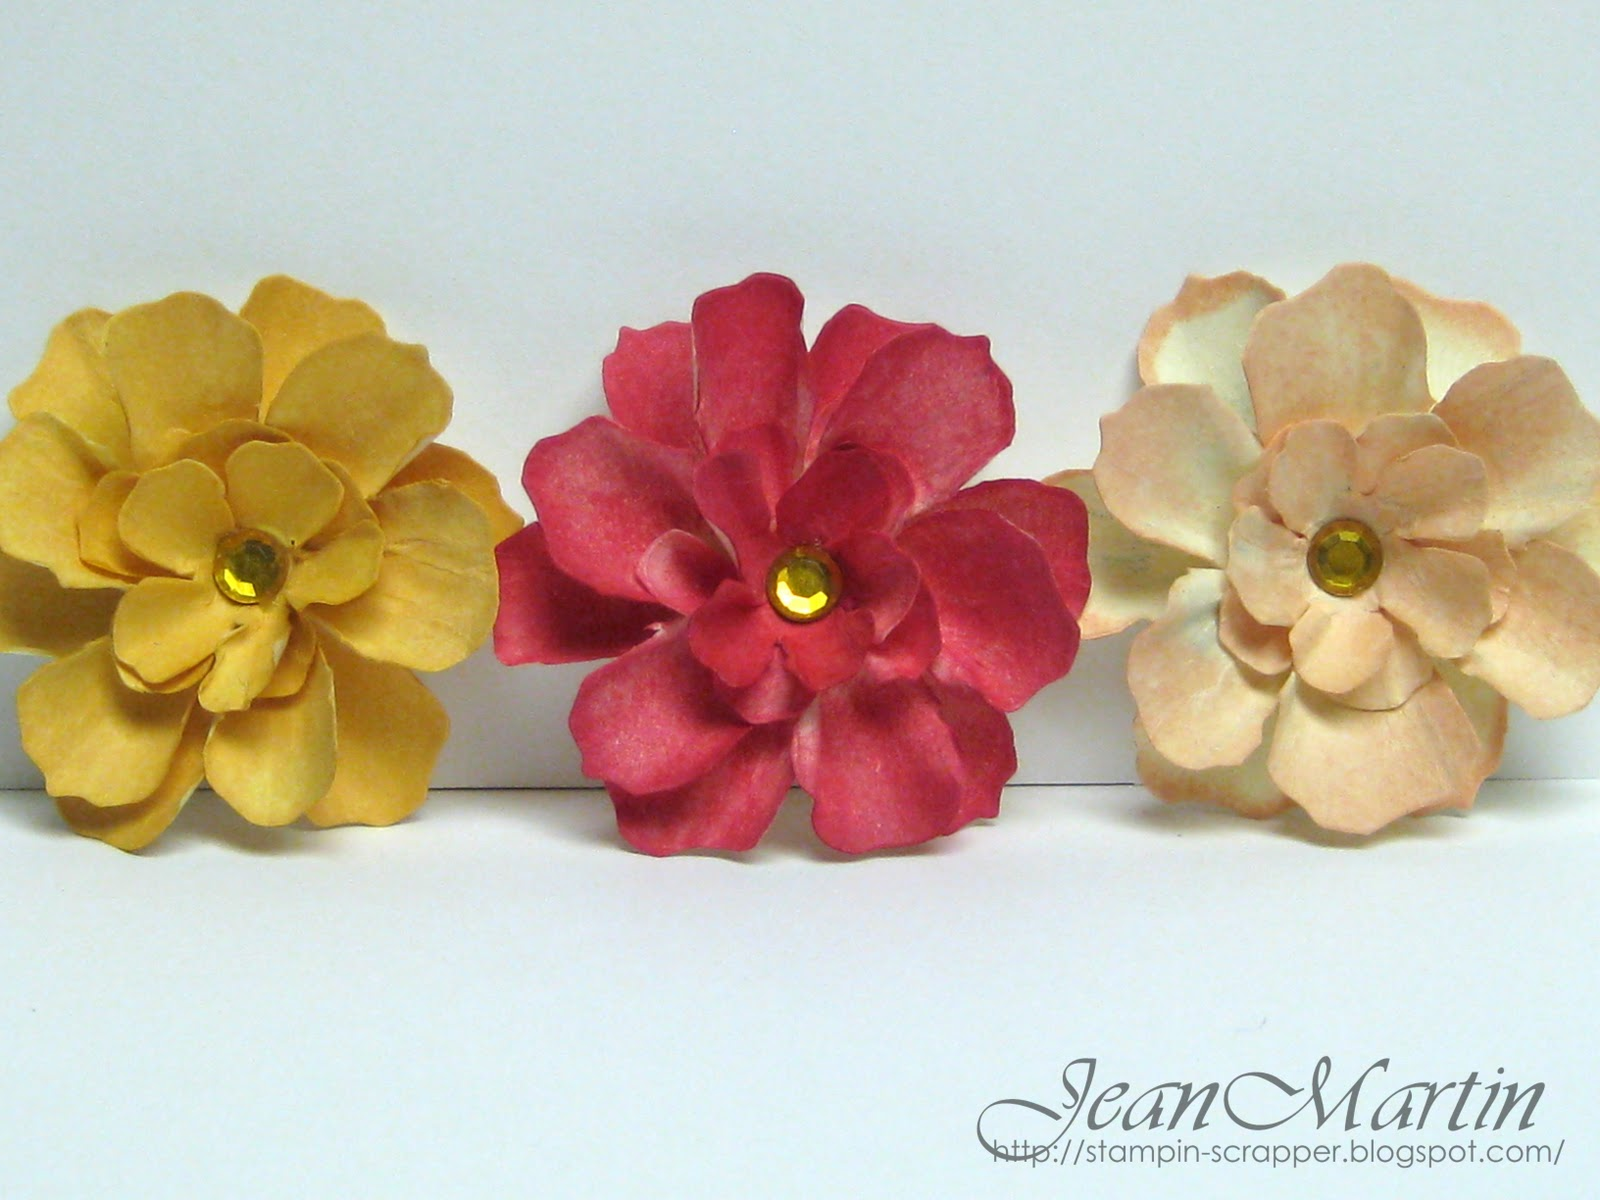 How To Make Handmade Flowers From Paper Stampin Scrapper Handmade Paper Flowers